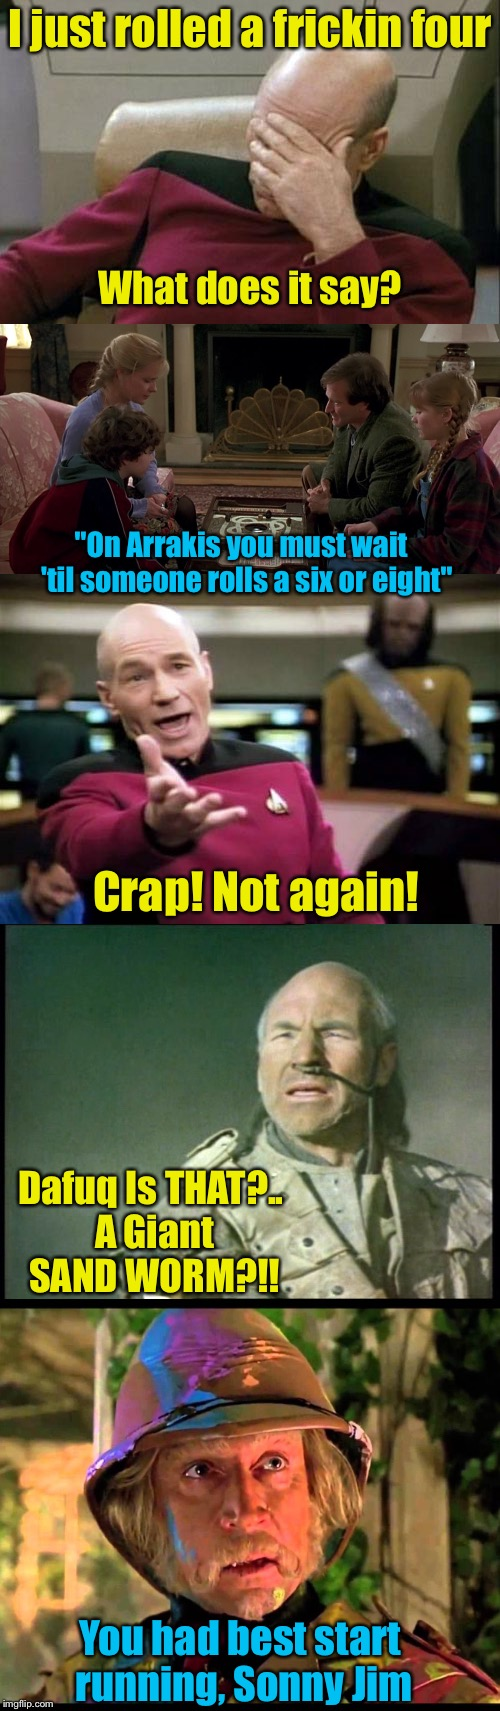 "When Films Collide | I just rolled a frickin four What does it say? ""On Arrakis you must wait  'til someone rolls a six or eight"" Crap! Not again! Dafuq Is THAT? 